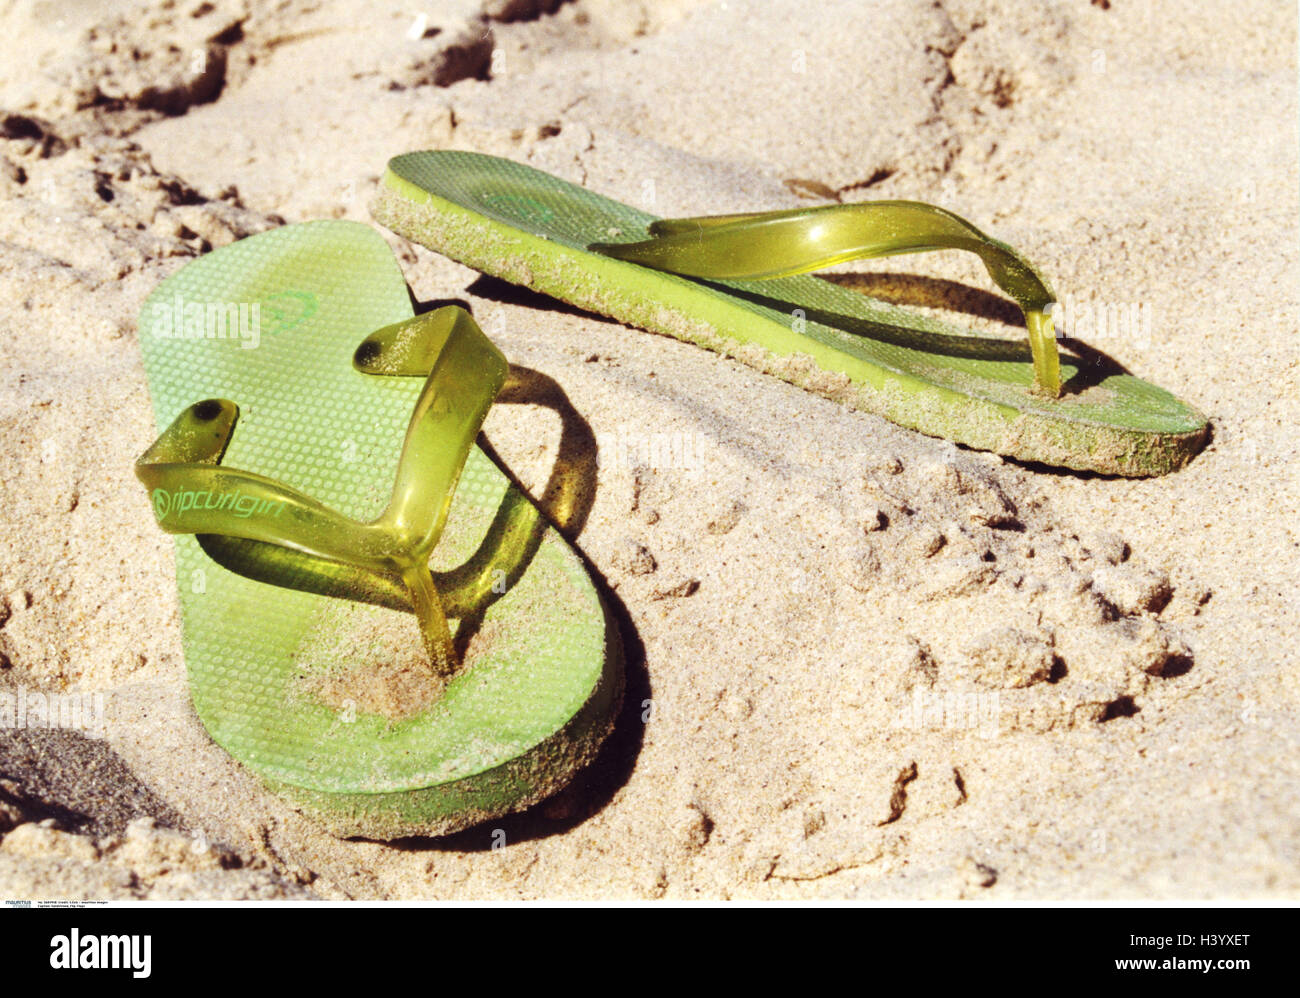 819740d6c Shoes Icon Stock Photos   Shoes Icon Stock Images - Alamy